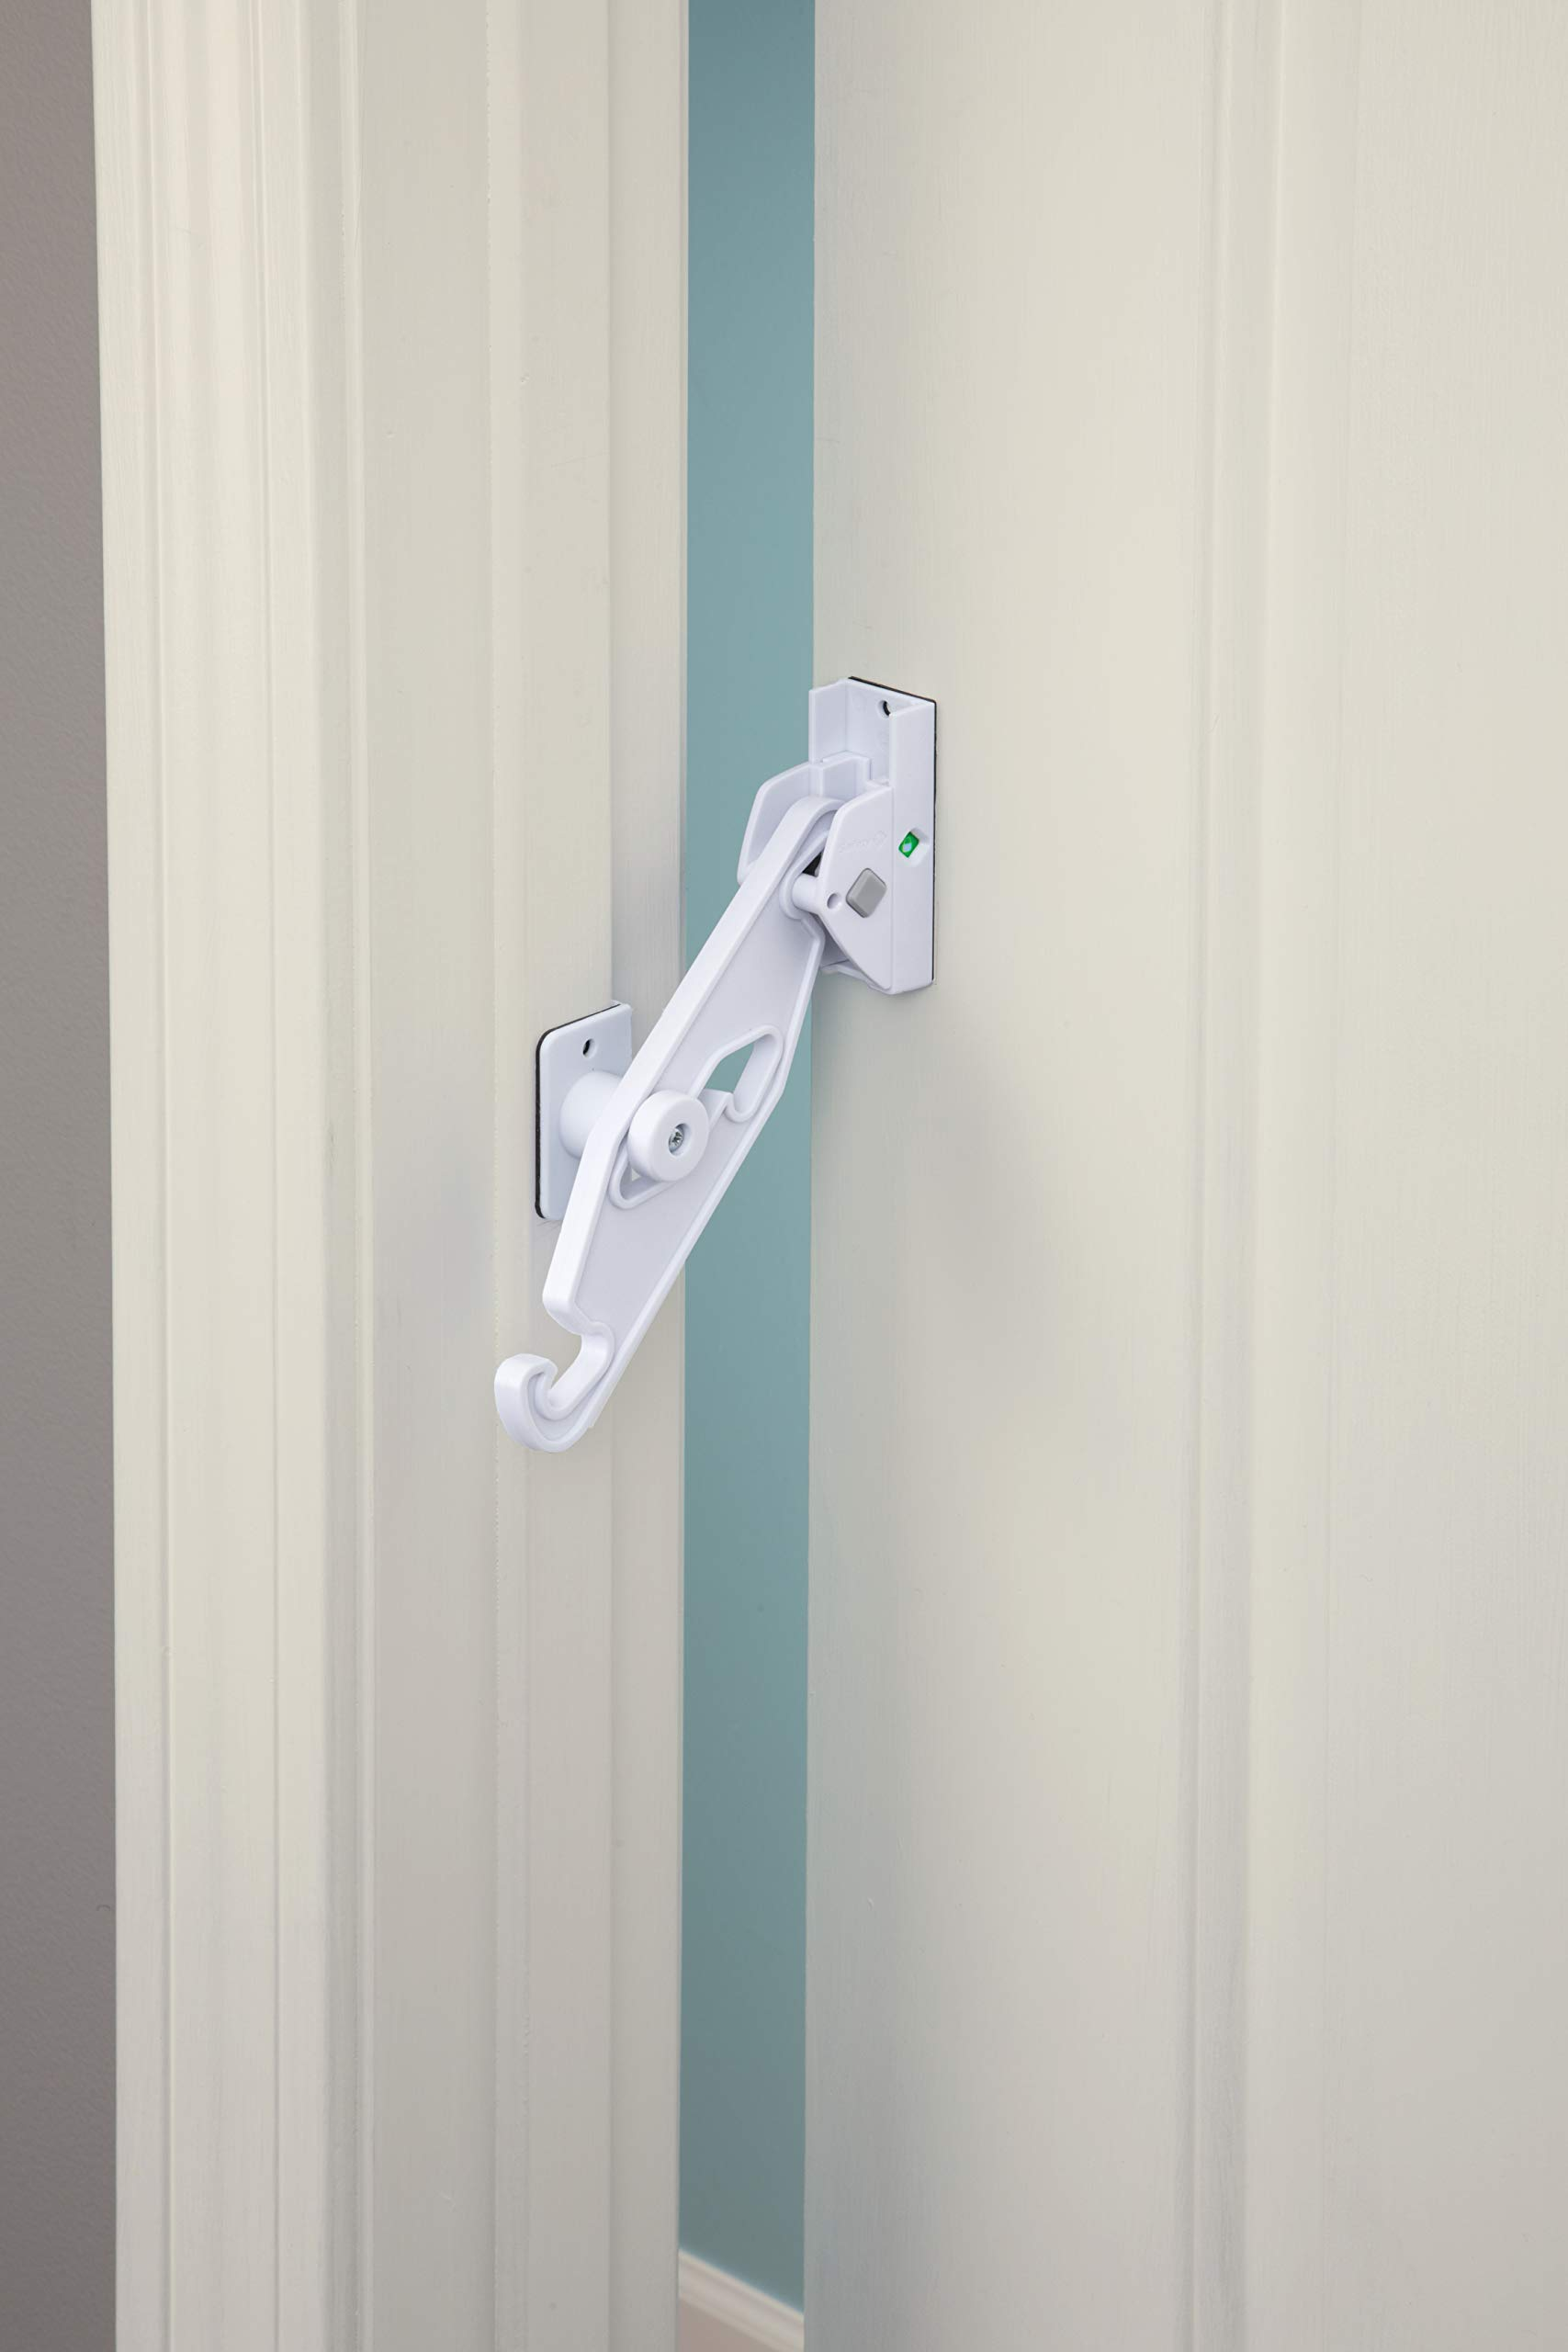 Safety 1st Top of Door Lock for Childproofing by Safety 1st